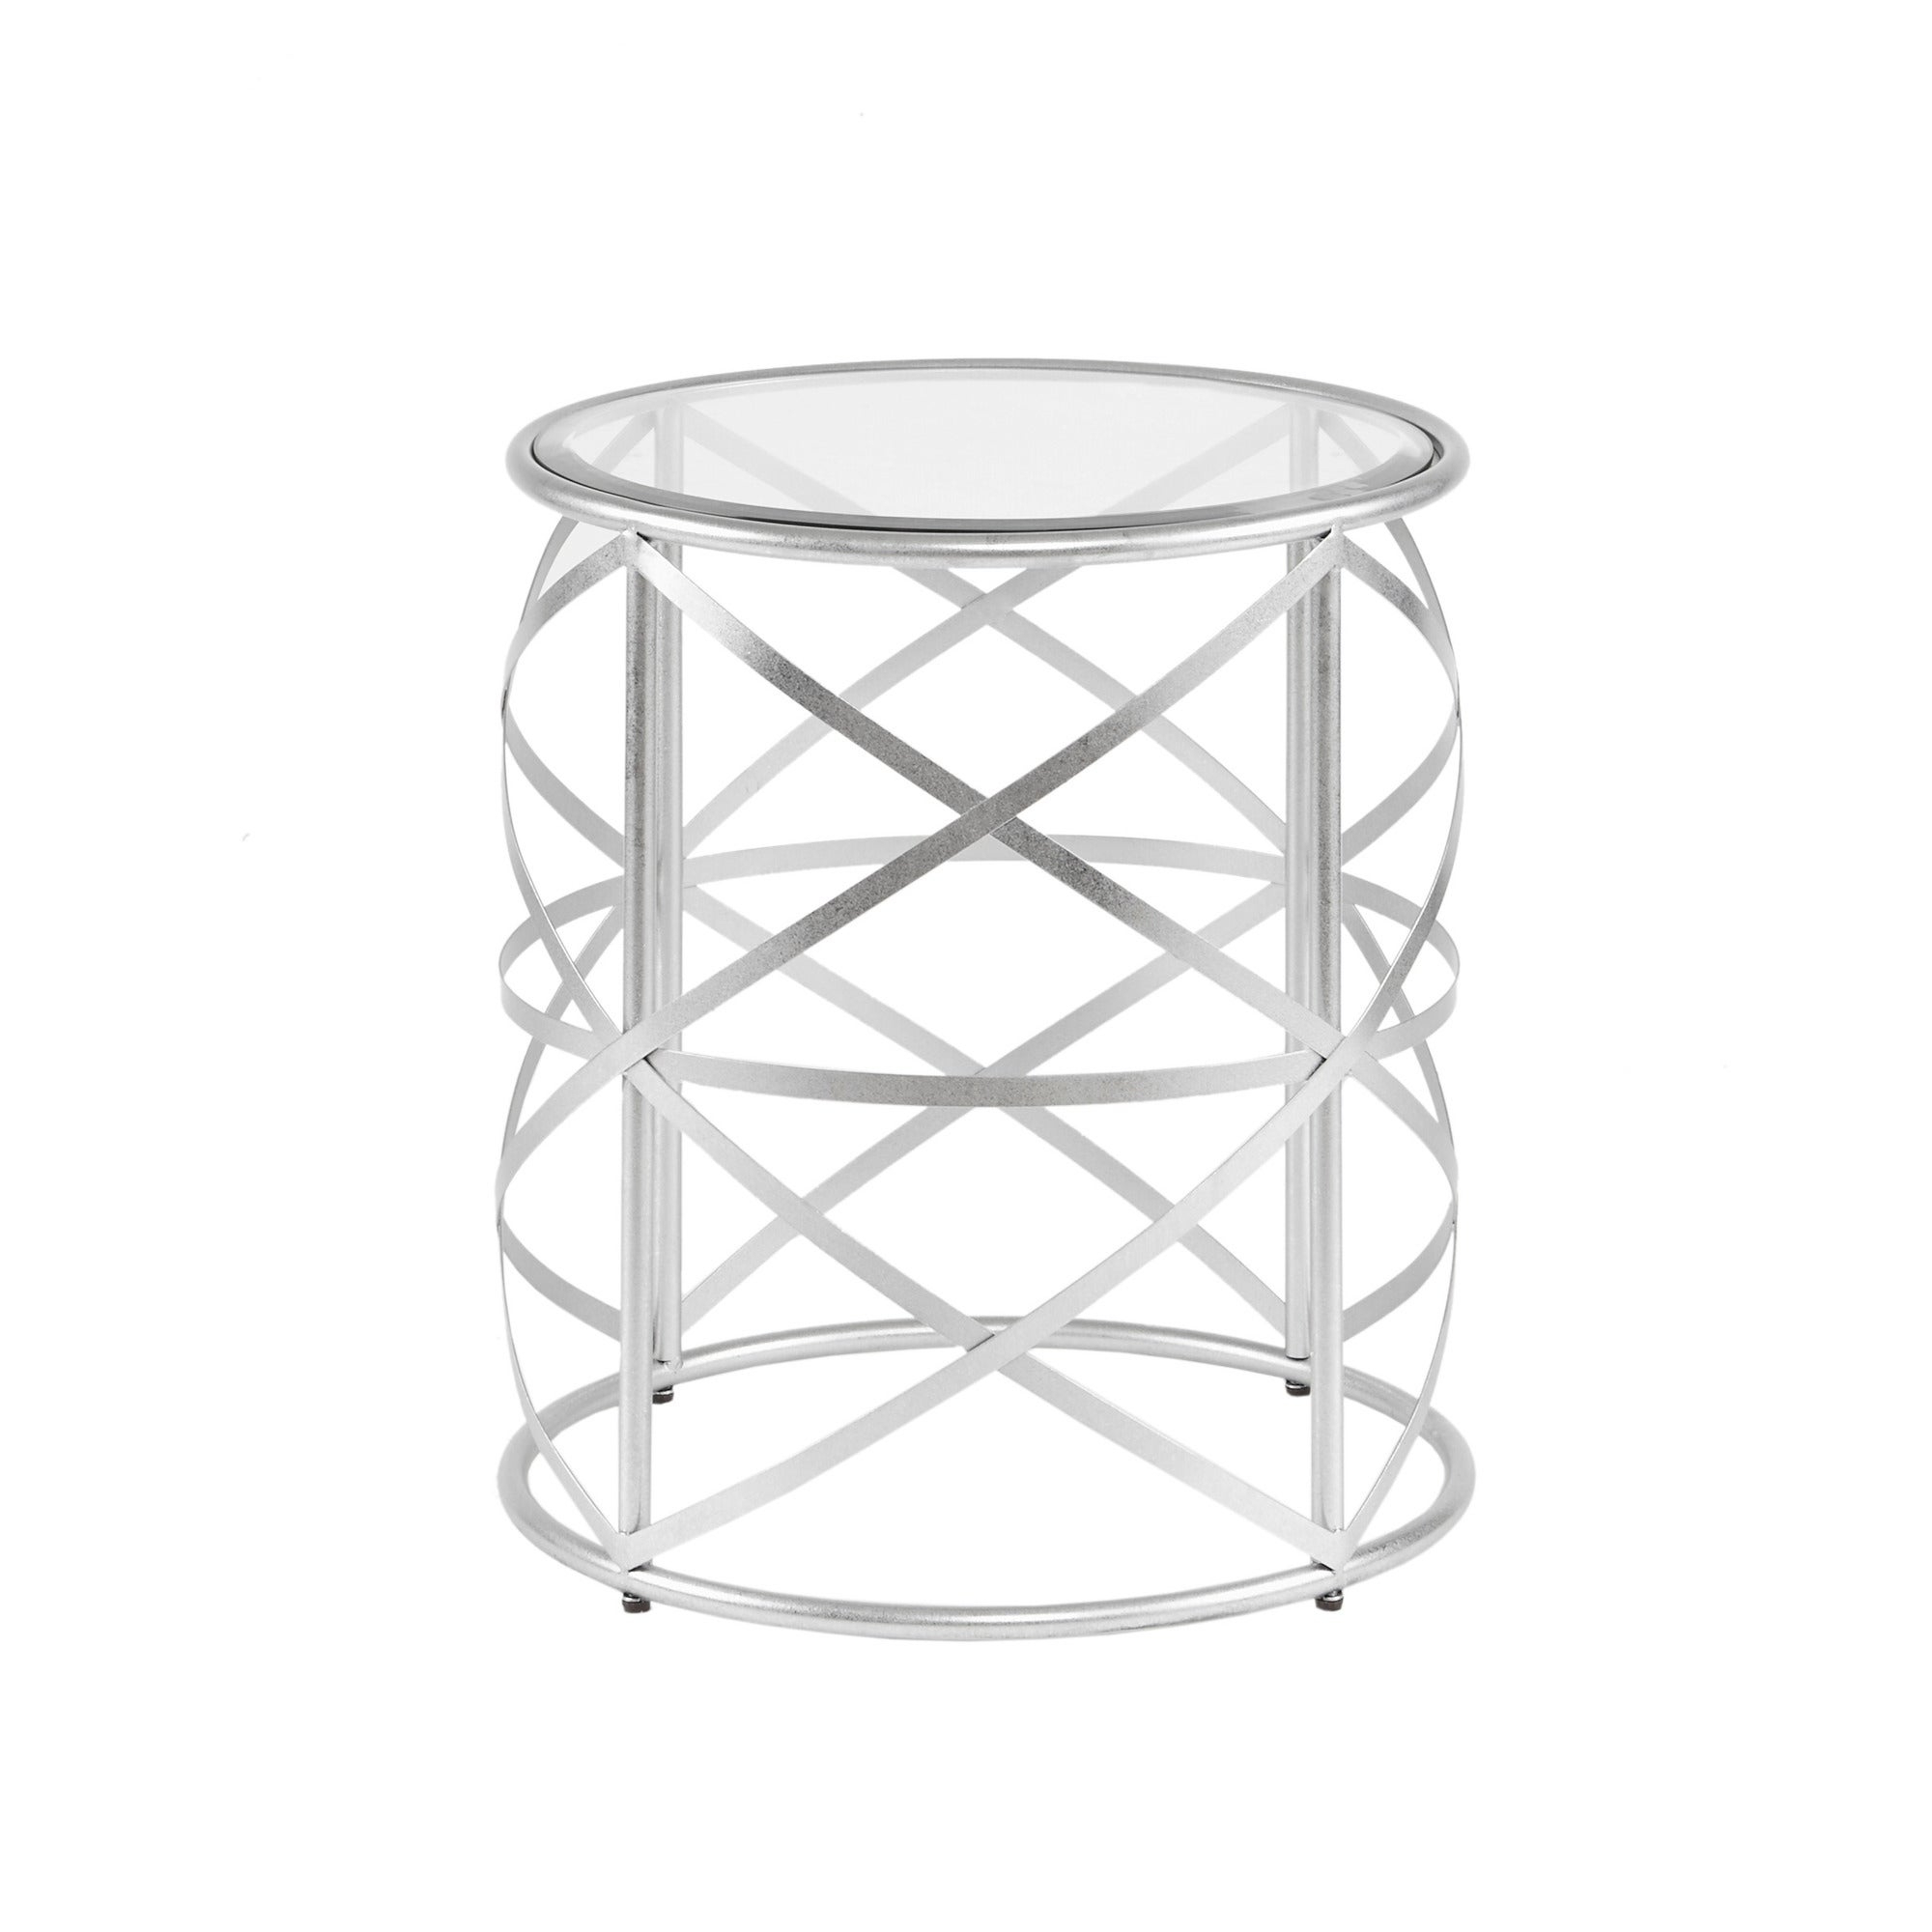 "Madison Park Susie Glam Accent Table 2 Color Option – 20""w X 20""d X 21""h Inside Widely Used Madison Park Susie Coffee Tables 2 Color Option (View 11 of 20)"